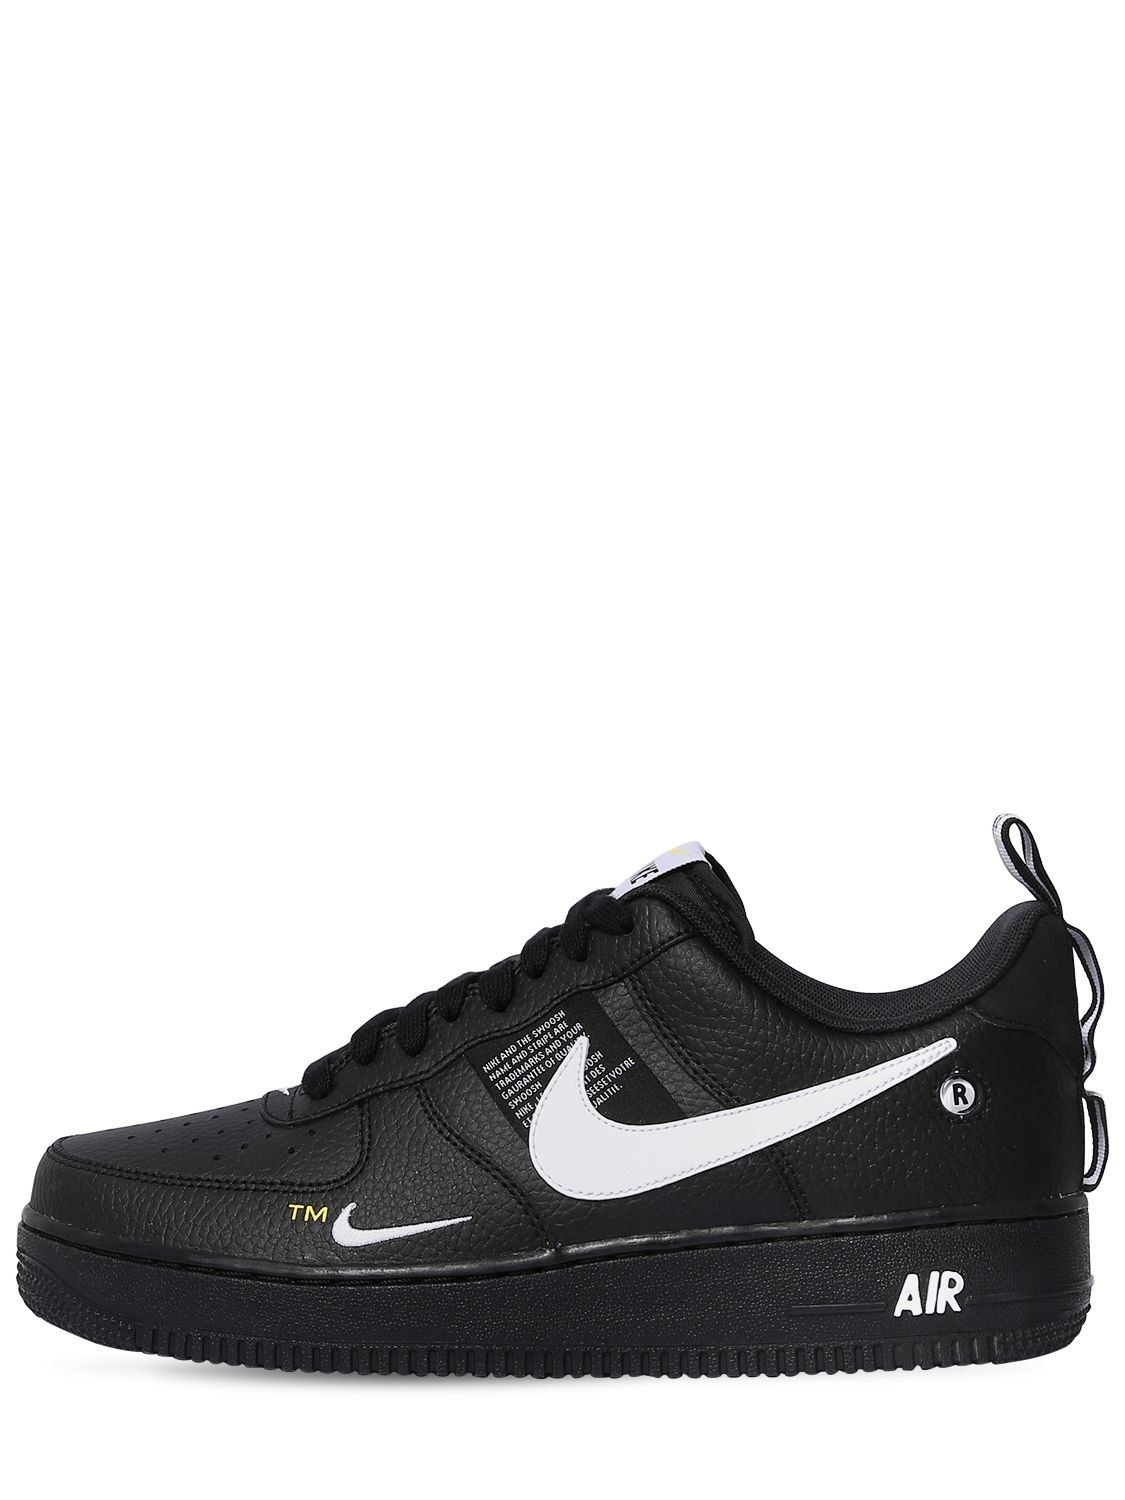 9a8968e0aa93 NIKE AIR FORCE 1  07 LV8 UTILITY SNEAKERS.  nike  shoes